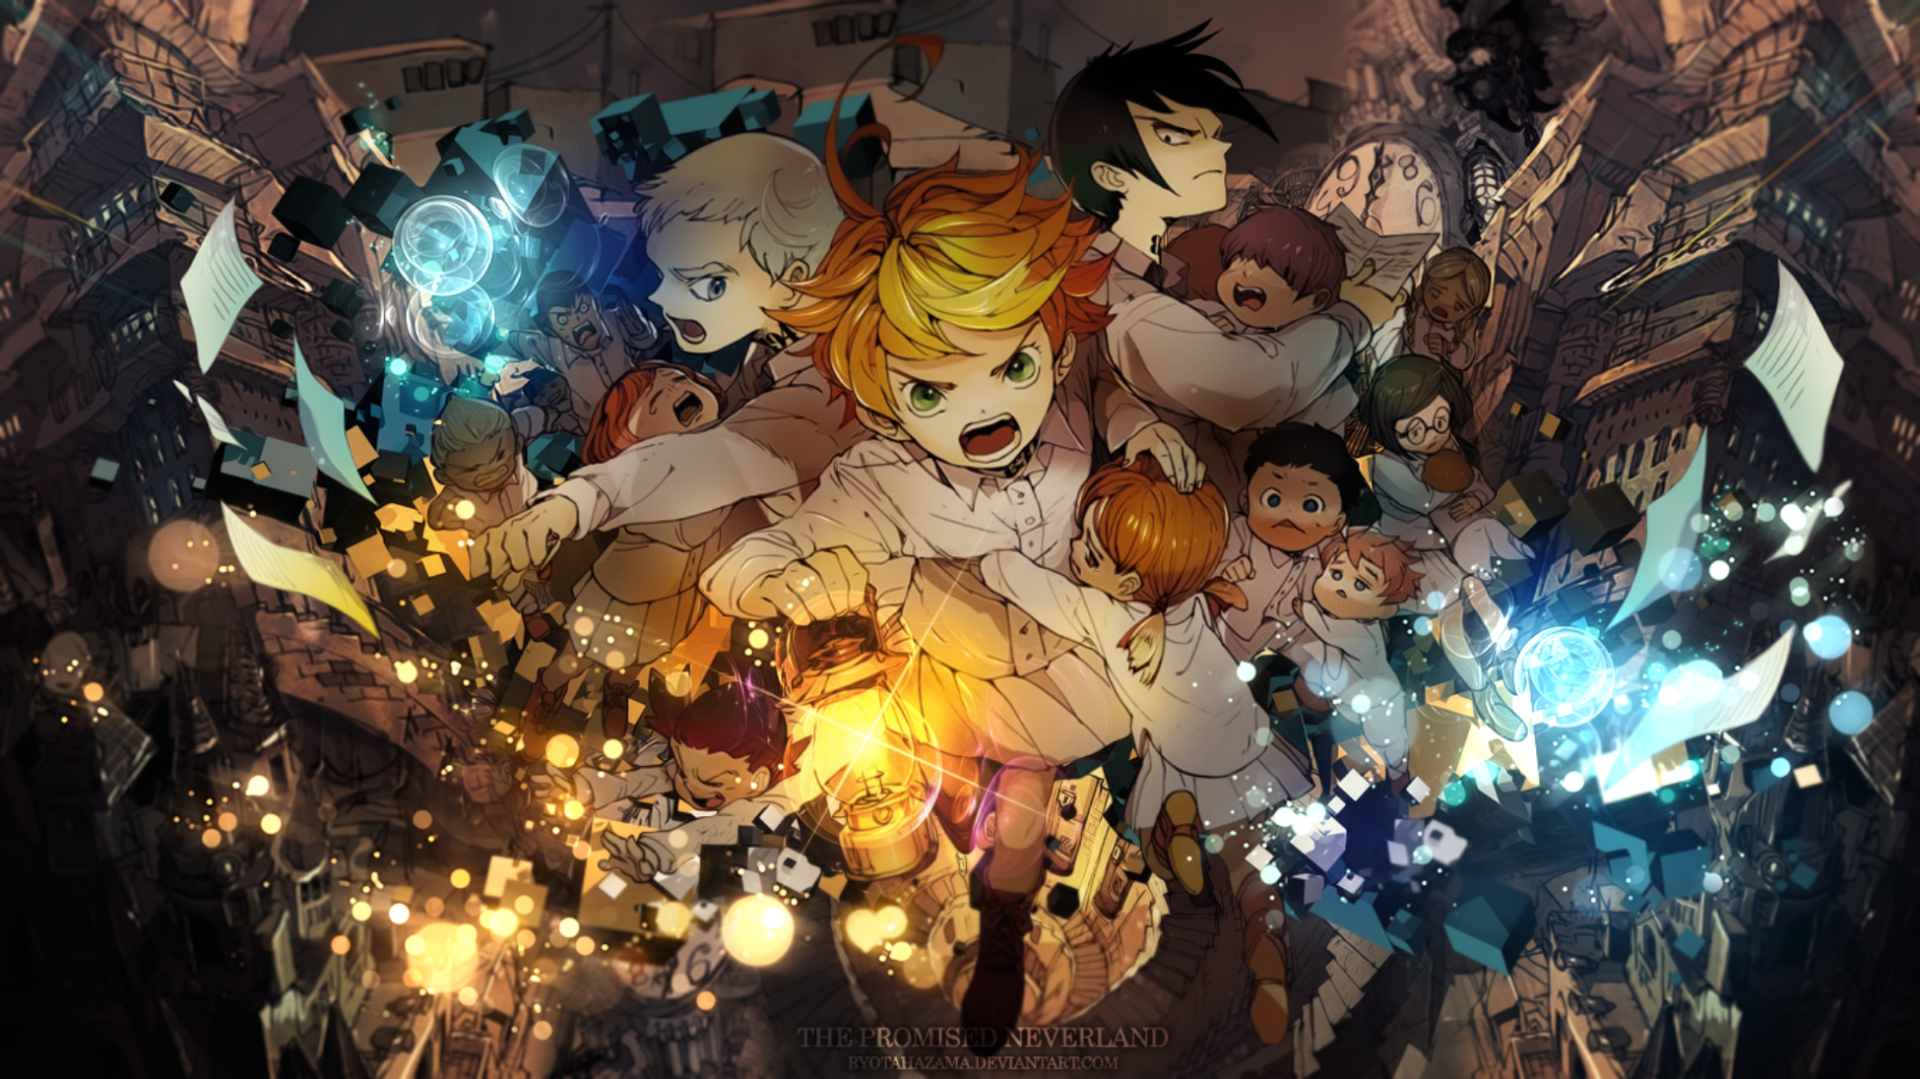 The Promised Neverland – Arriva un nuovo one-shot